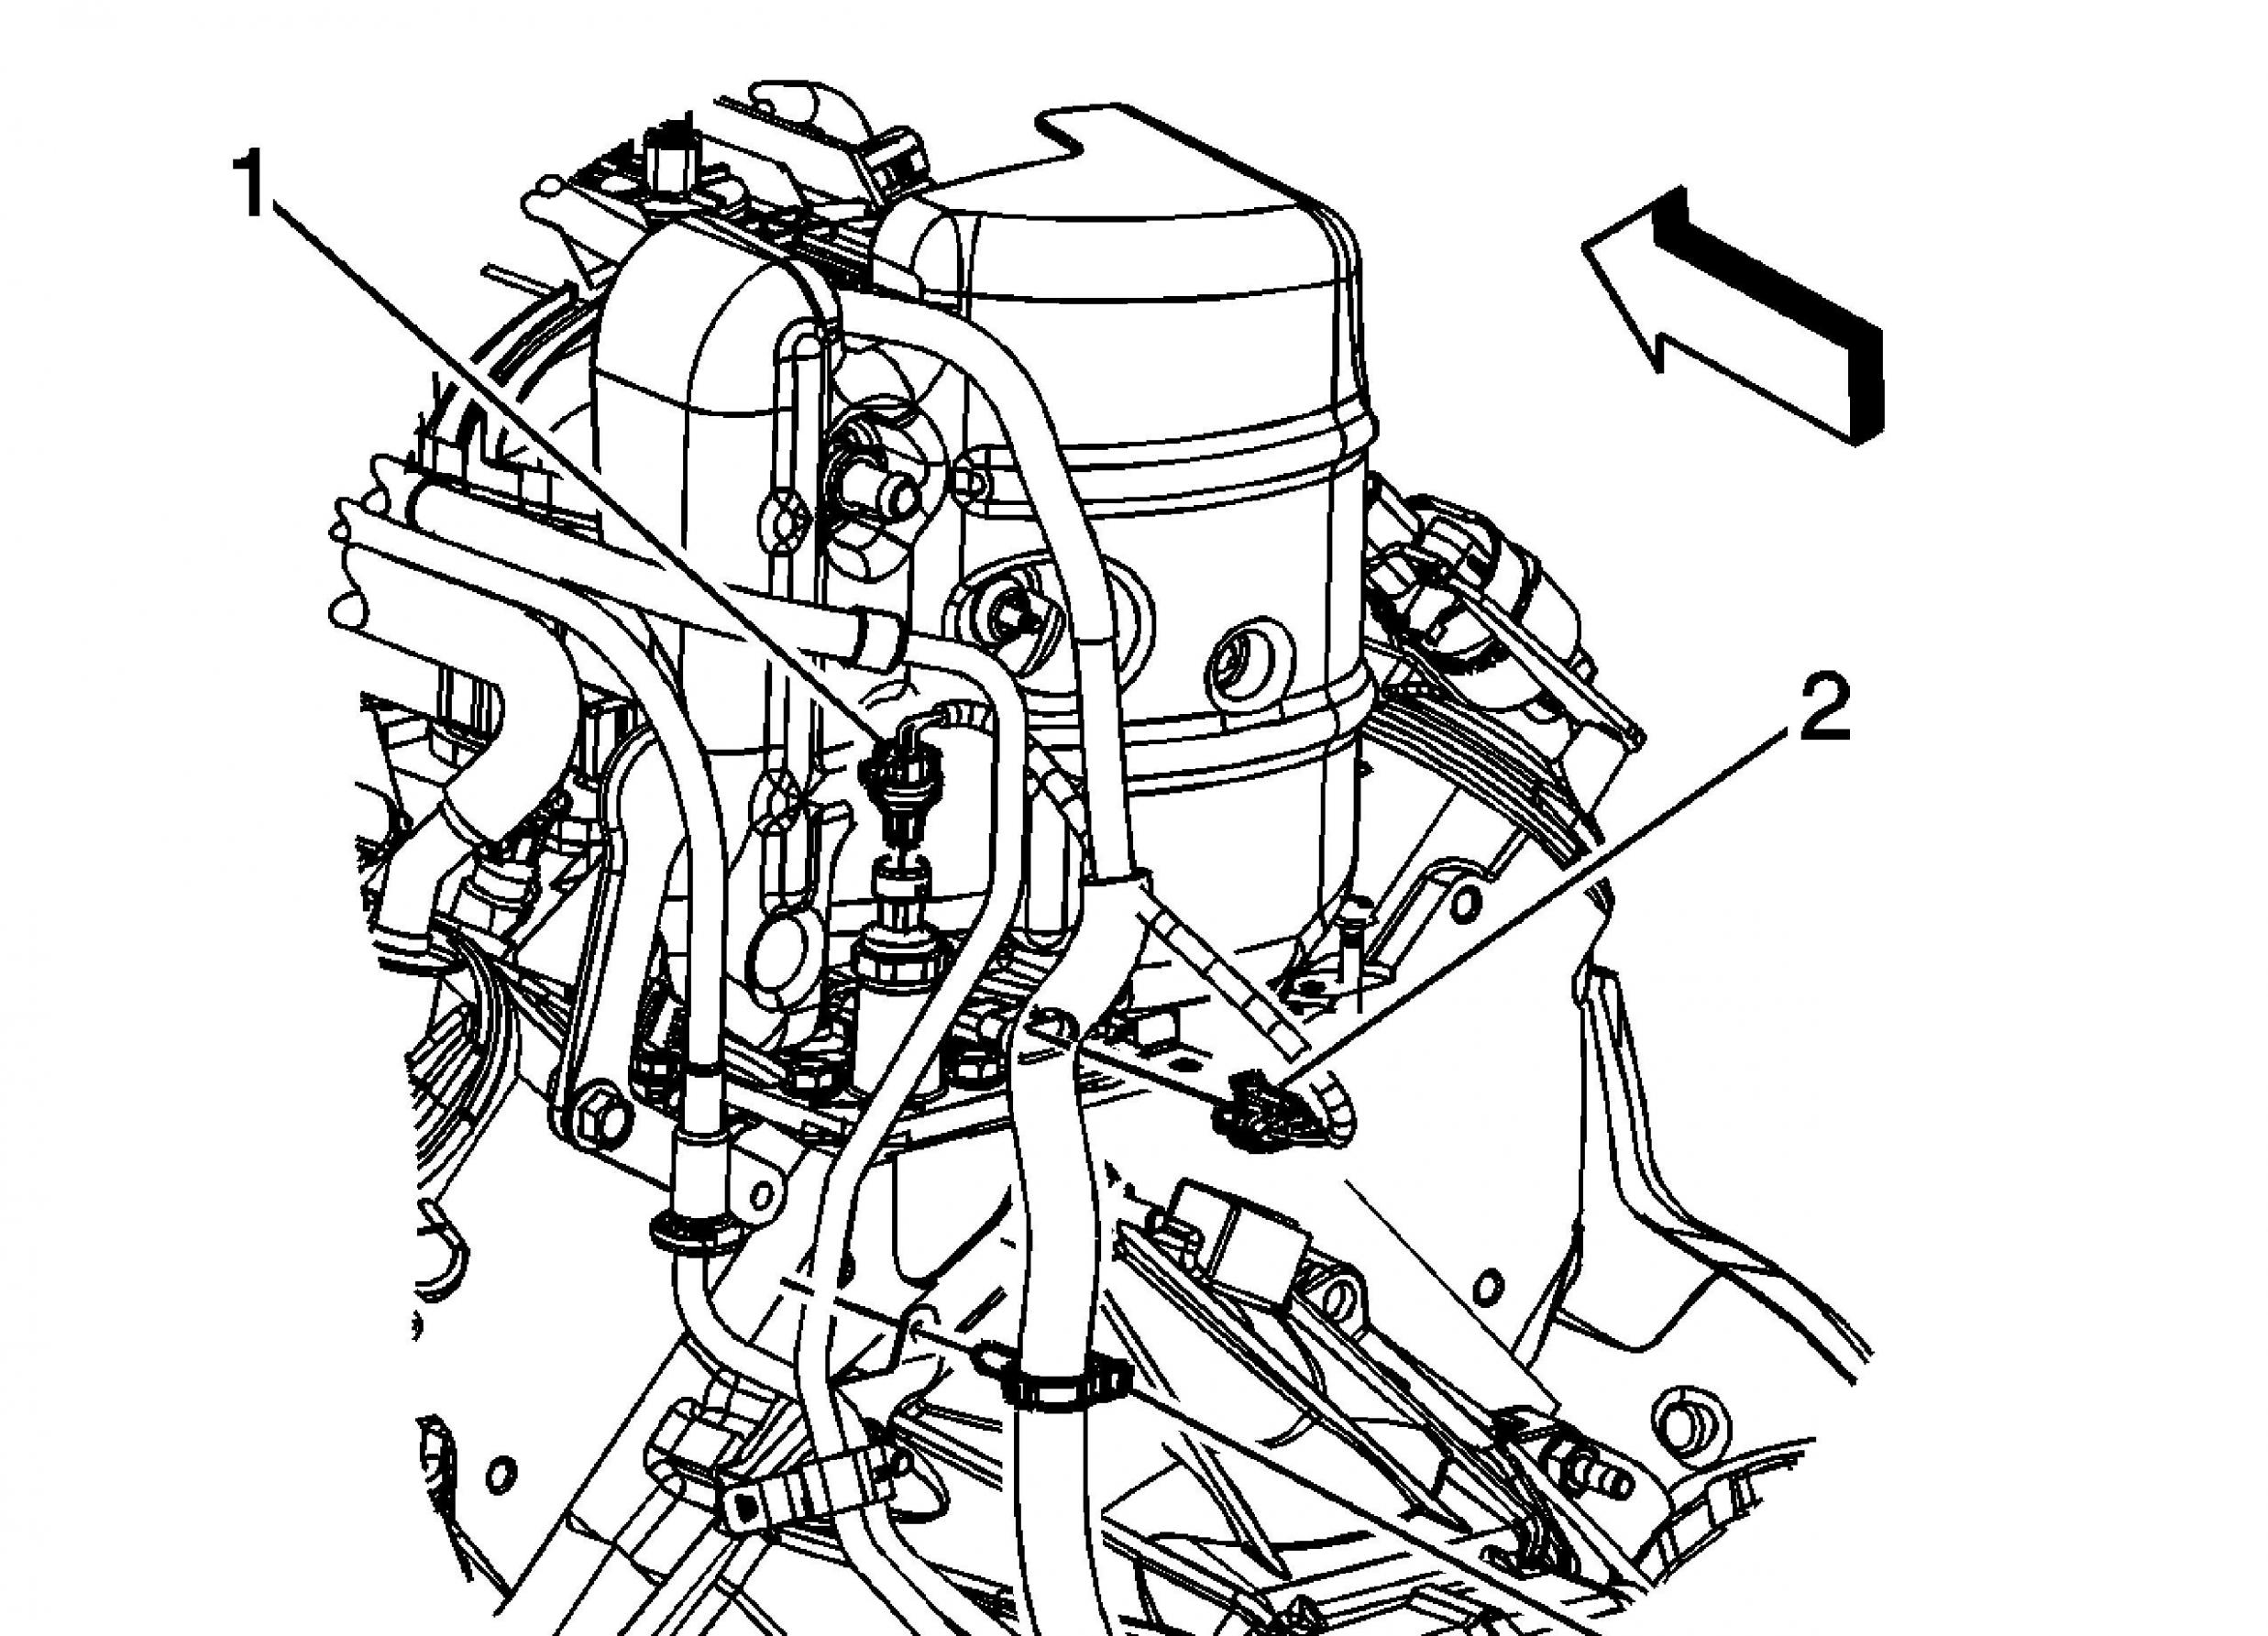 Gmc Sonoma Radio Wiring Diagram, Gmc, Free Engine Image